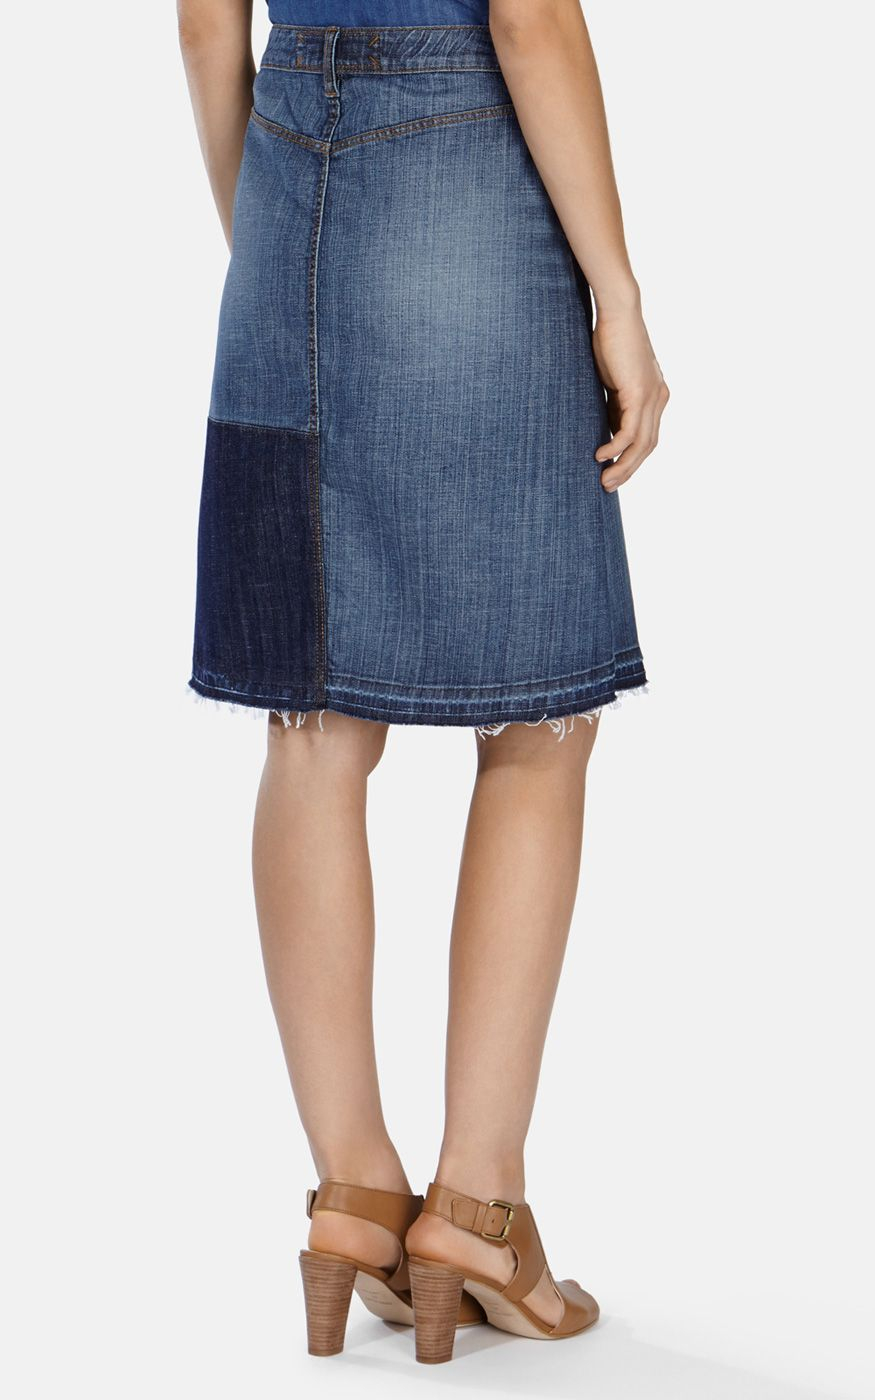 Trust Gap for skirts made with durable and comfortable denim, too. Grab a versatile and smart denim style skirt from Gap for lovely fashion-forward looks. Classic Denim Quality. Enjoy reliable Gap quality in these women's denim skirts. Get soft skirts made with durable .